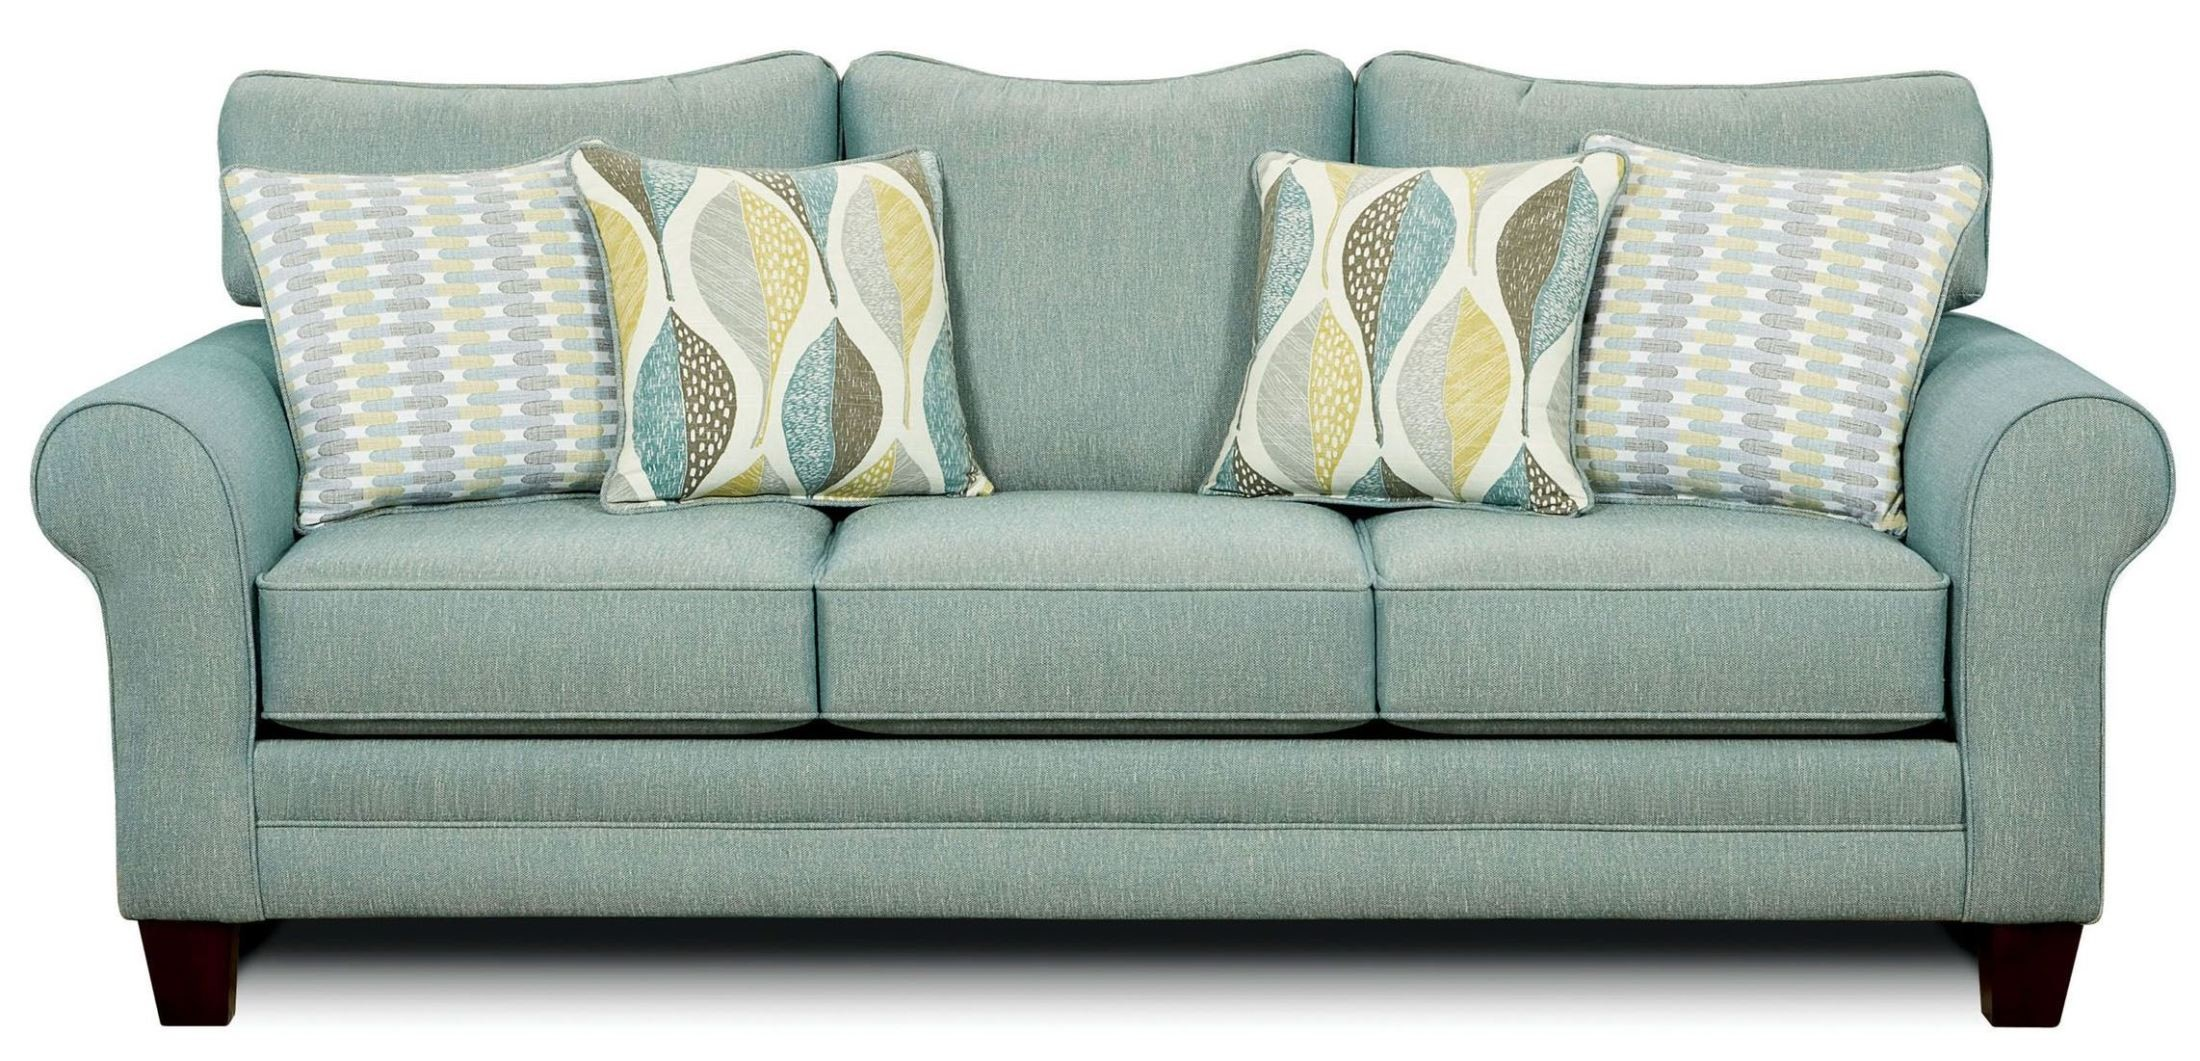 Brubeck soft teal sofa from furniture of america sm8140 for Buy sofa online usa